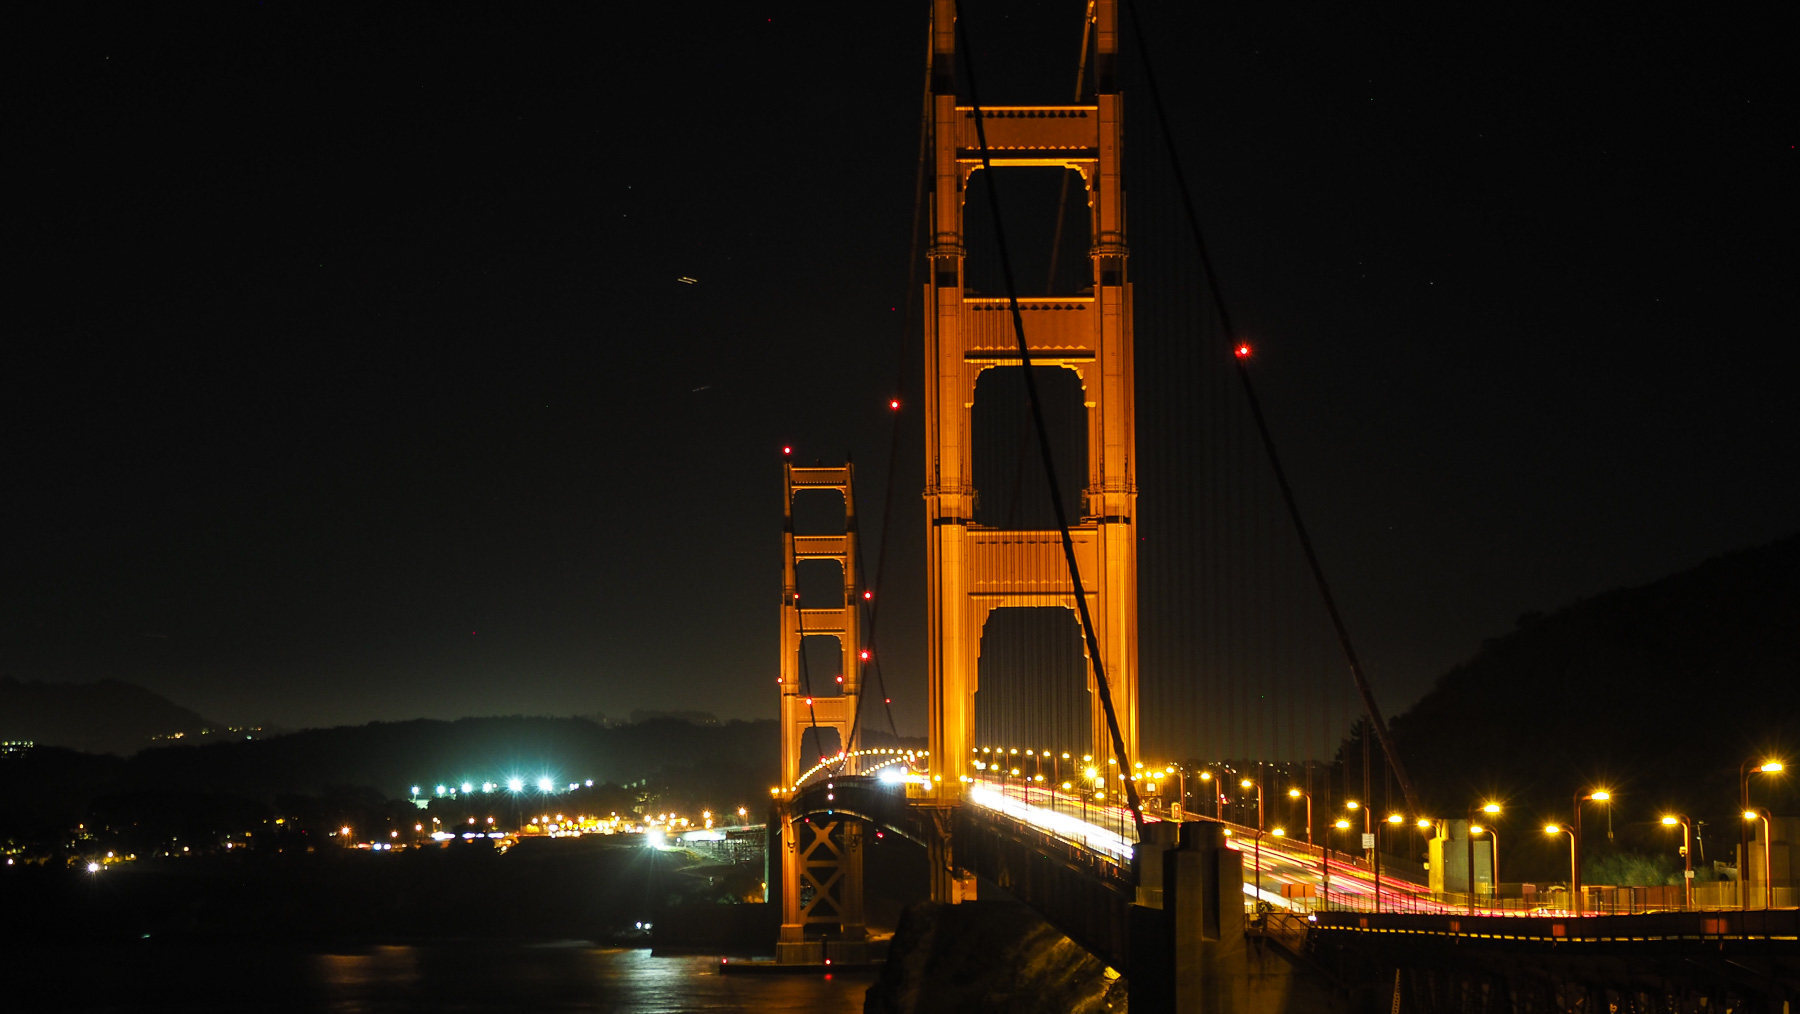 Golden Gate Bridge bei Nacht